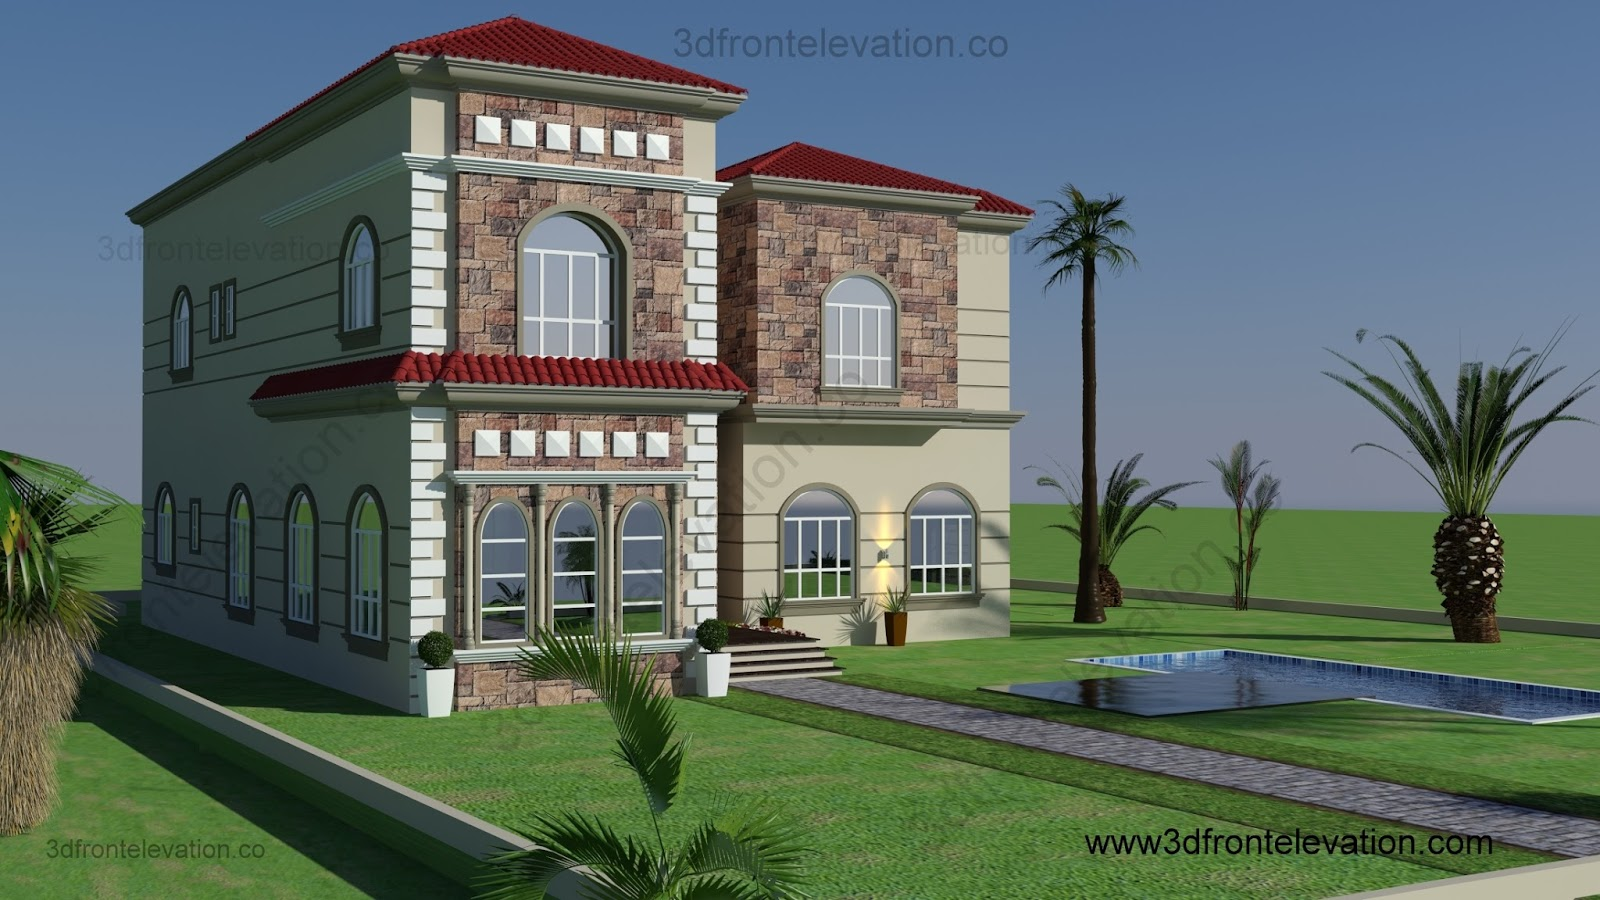 Front Elevation House Dubai : D front elevation oman